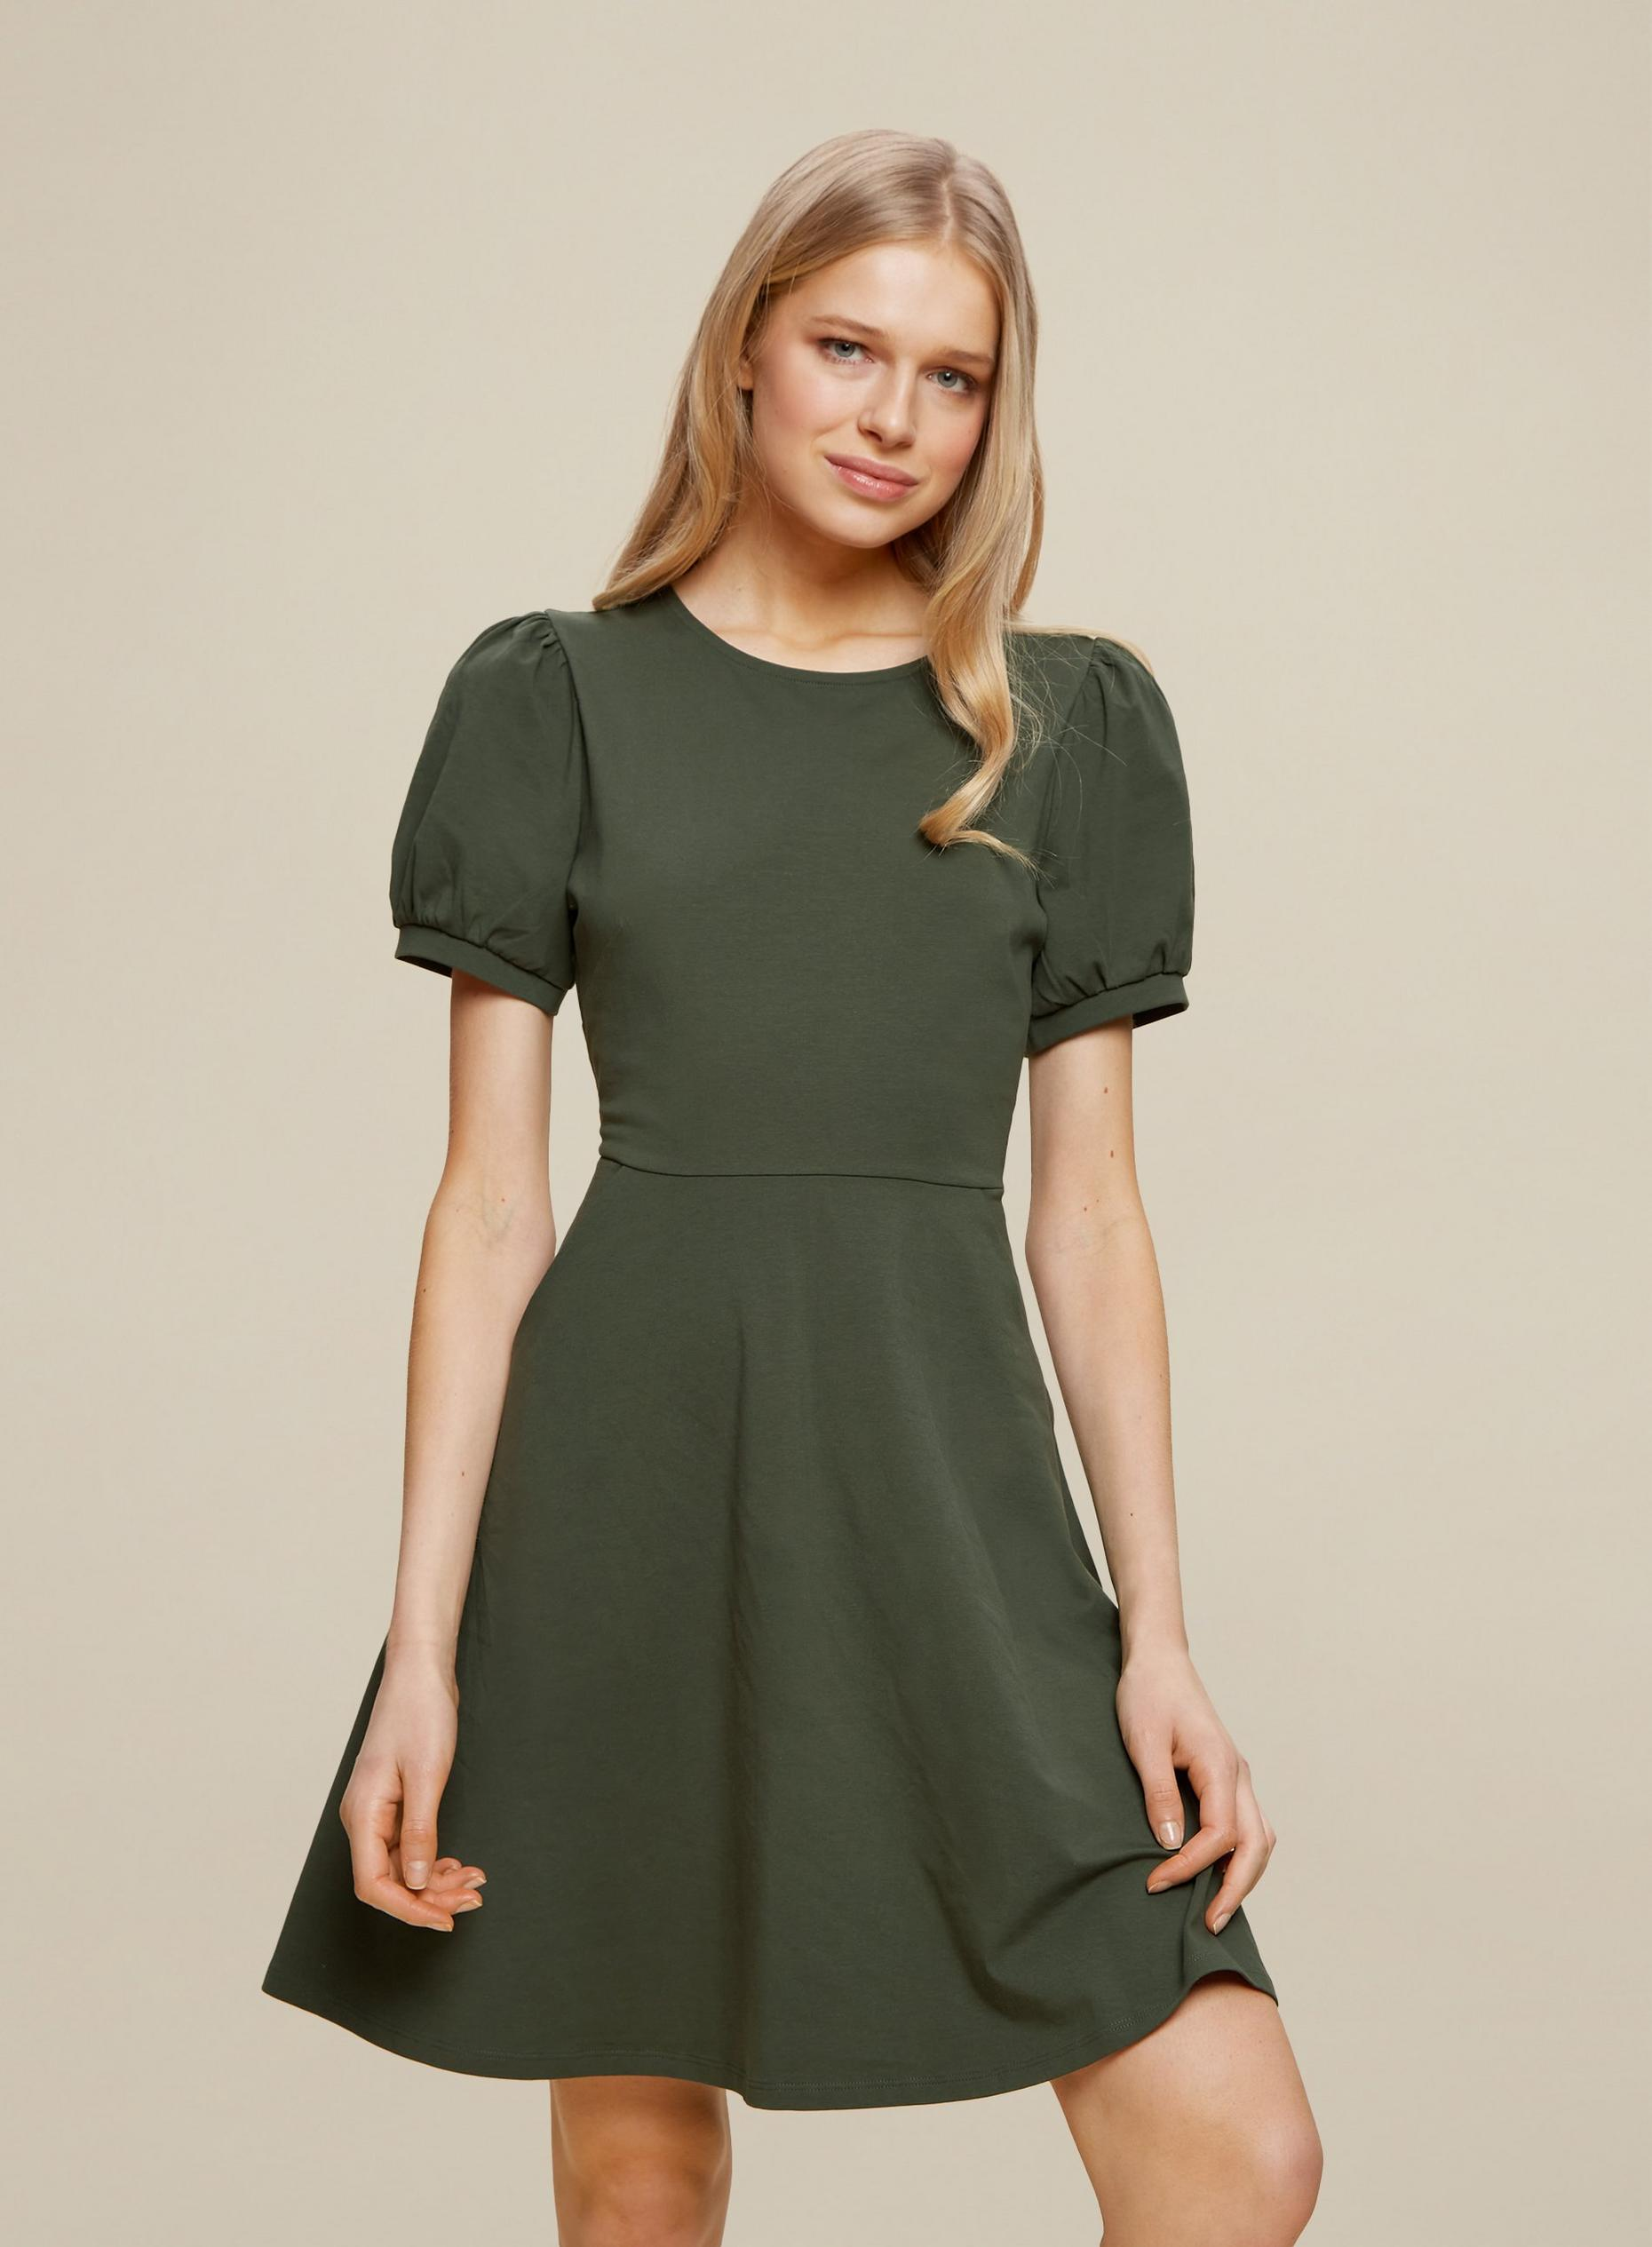 Khaki Organic Cotton T Shirt Dress